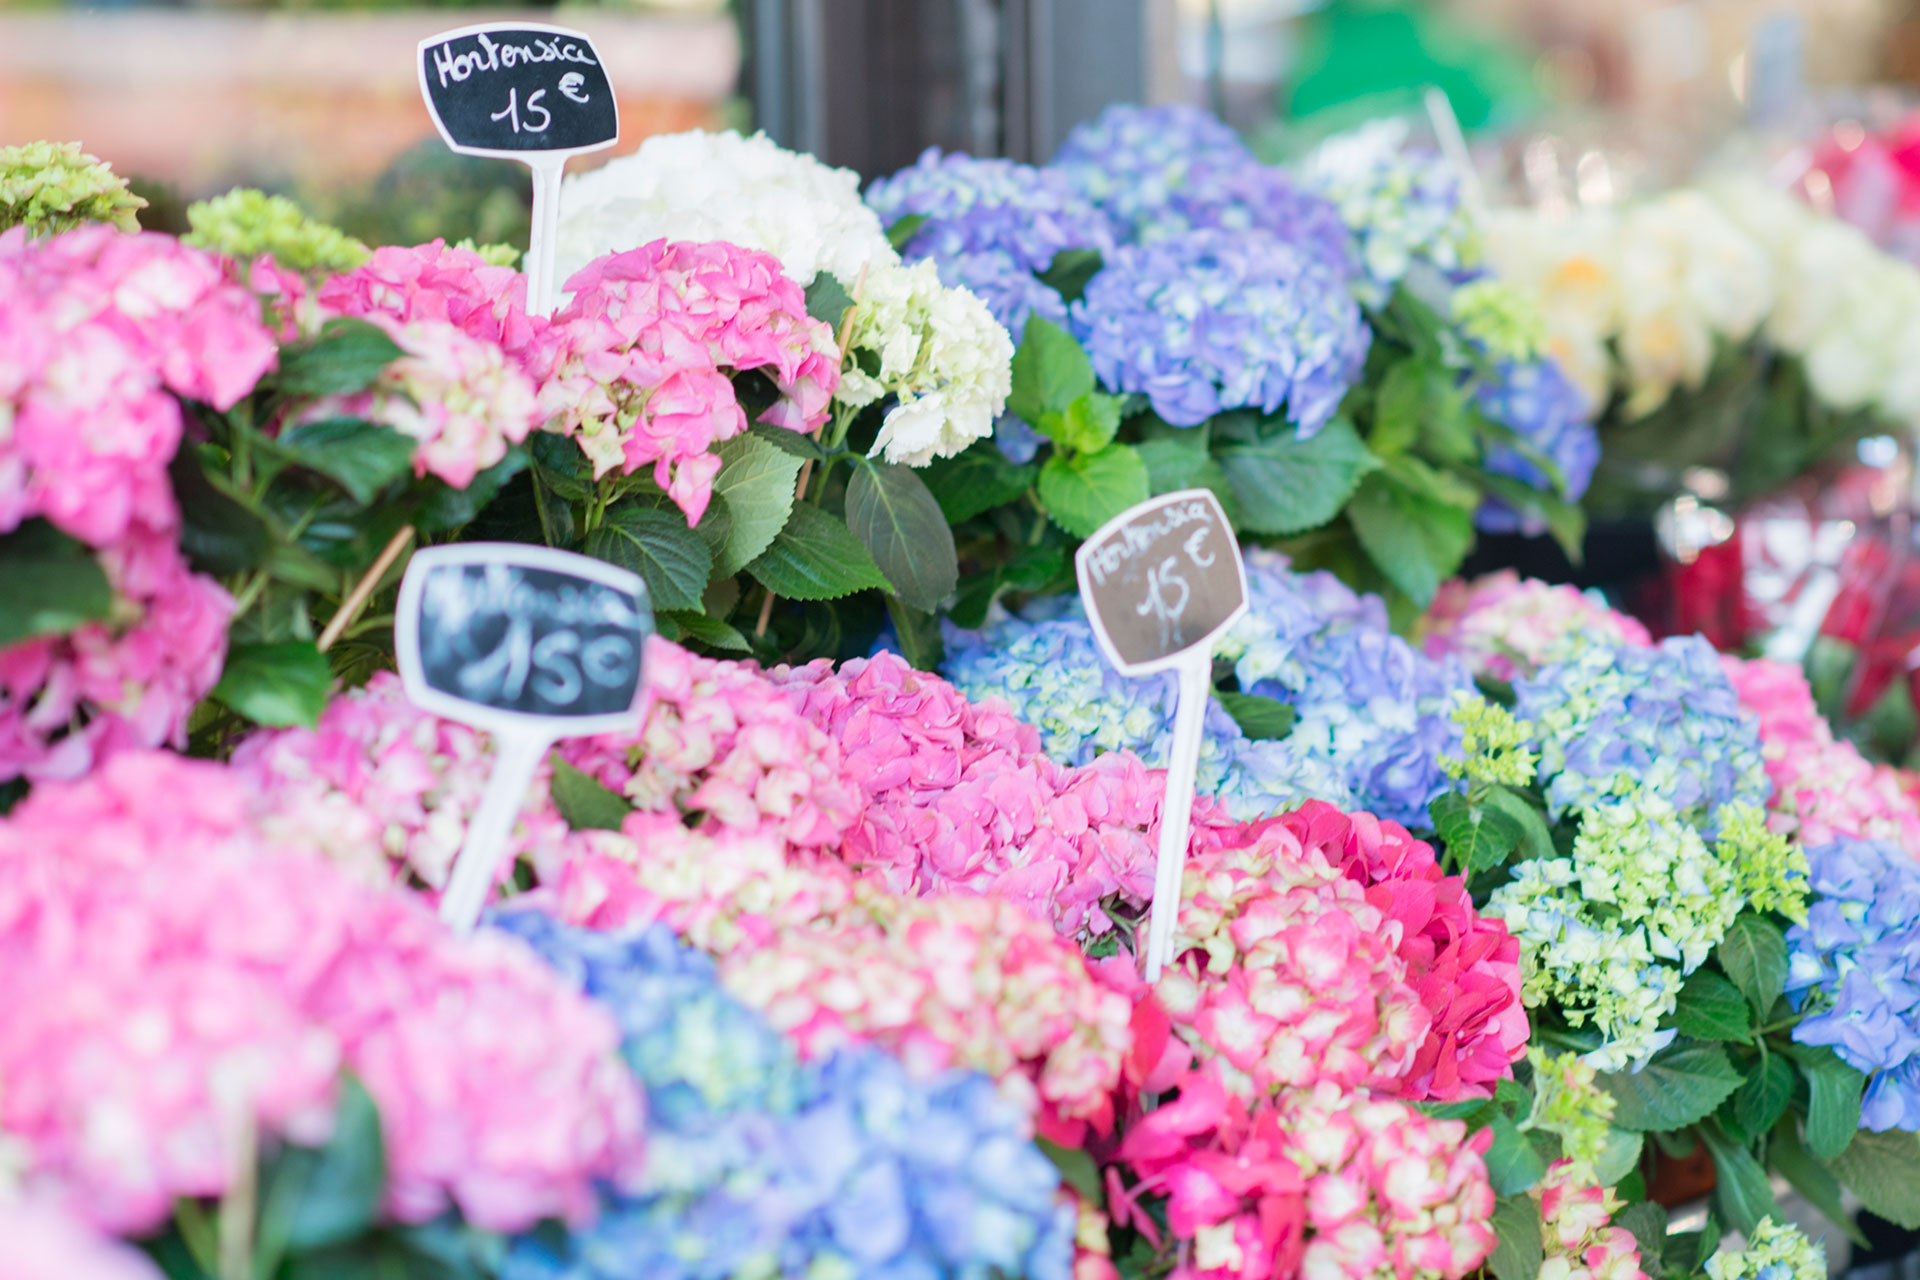 Brighten your day with some fresh flowers from the local market - Paris Perfect